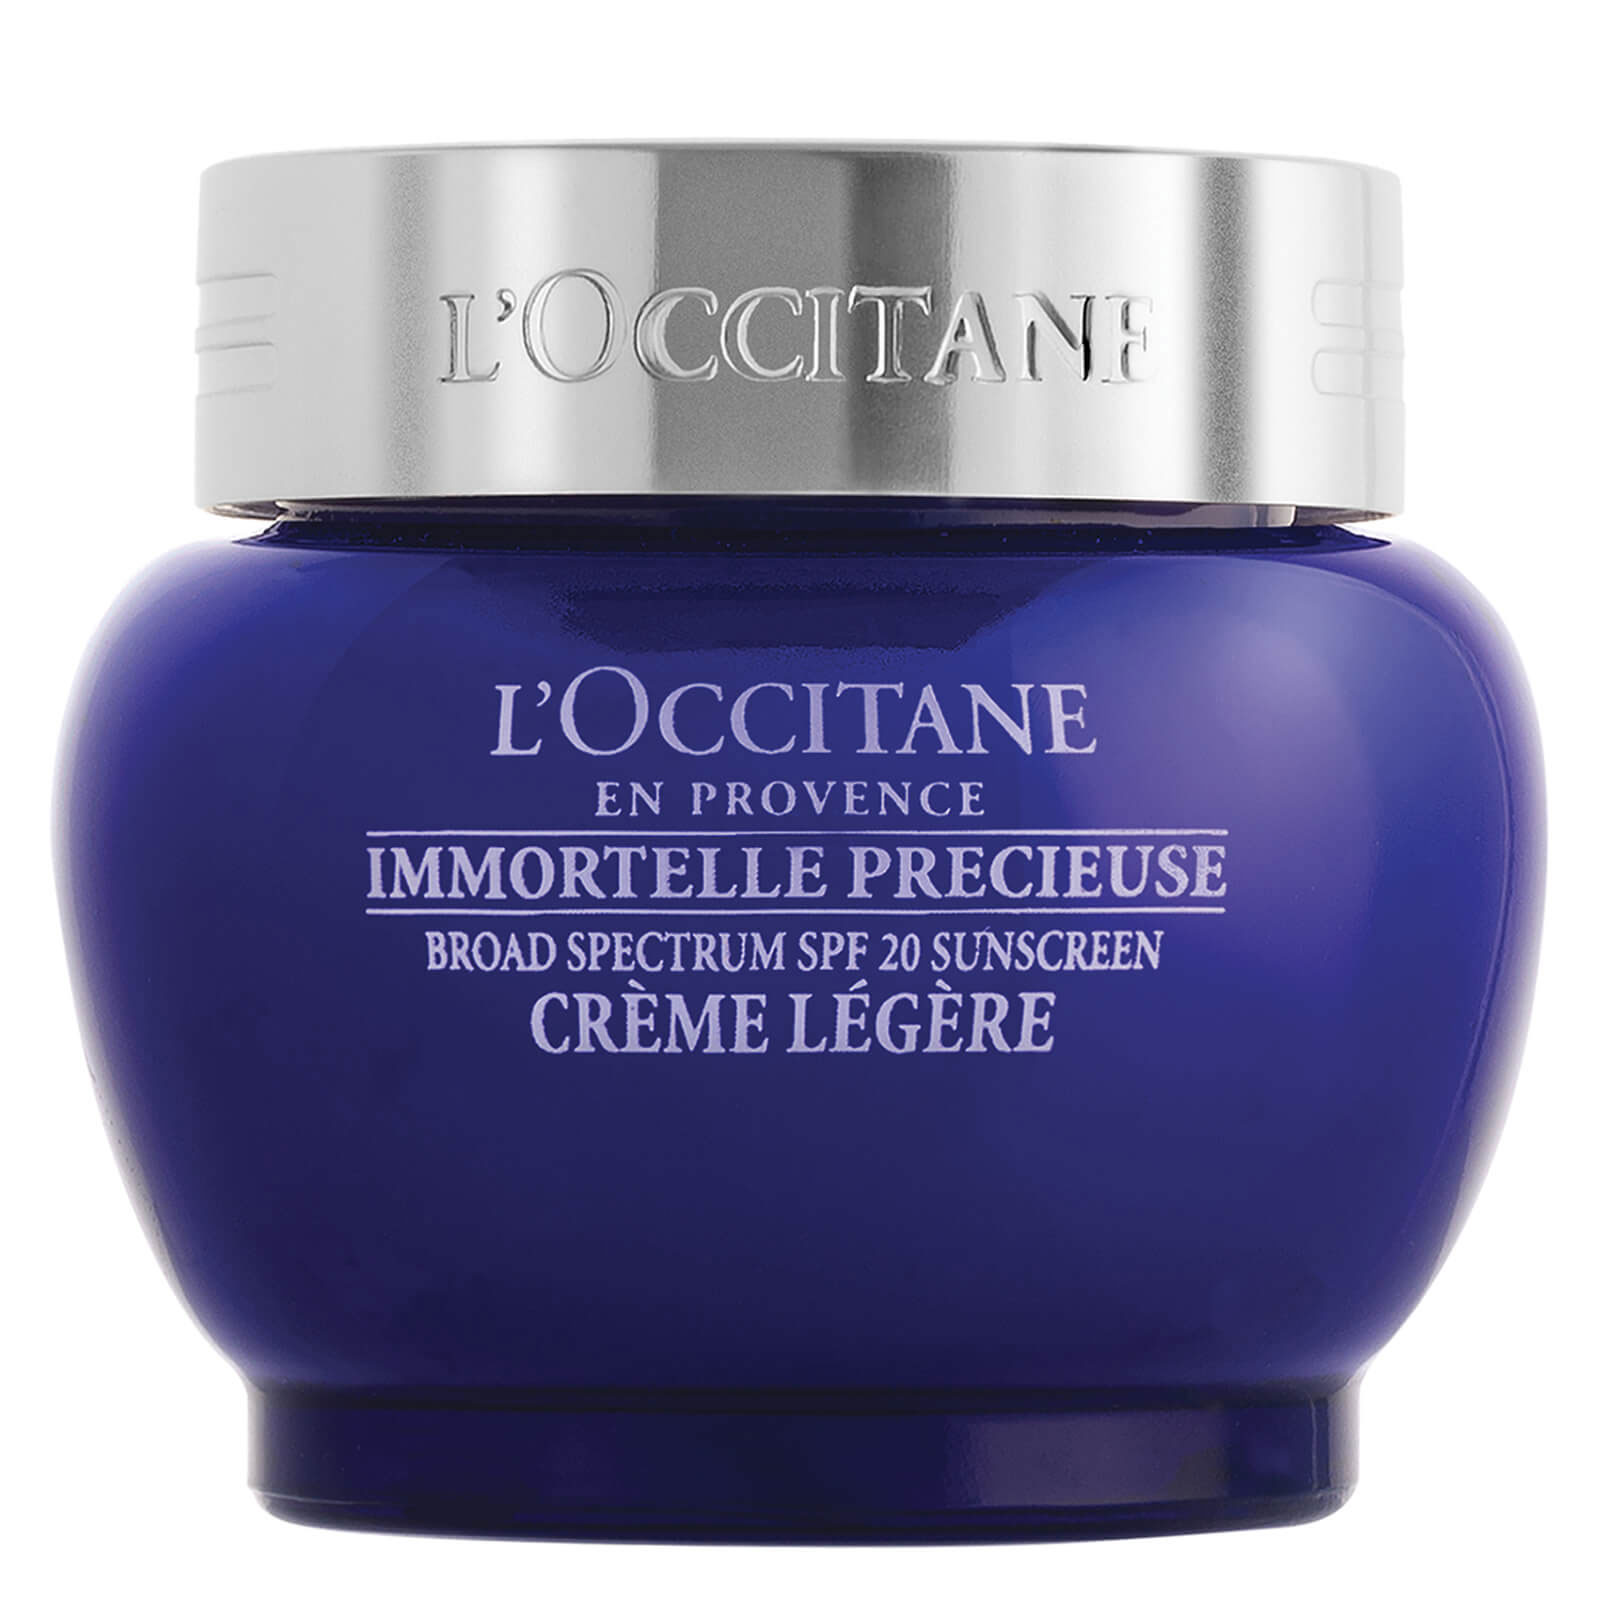 For Normal Skin: L'Occitane Immortelle Precious Light Cream SPF 20